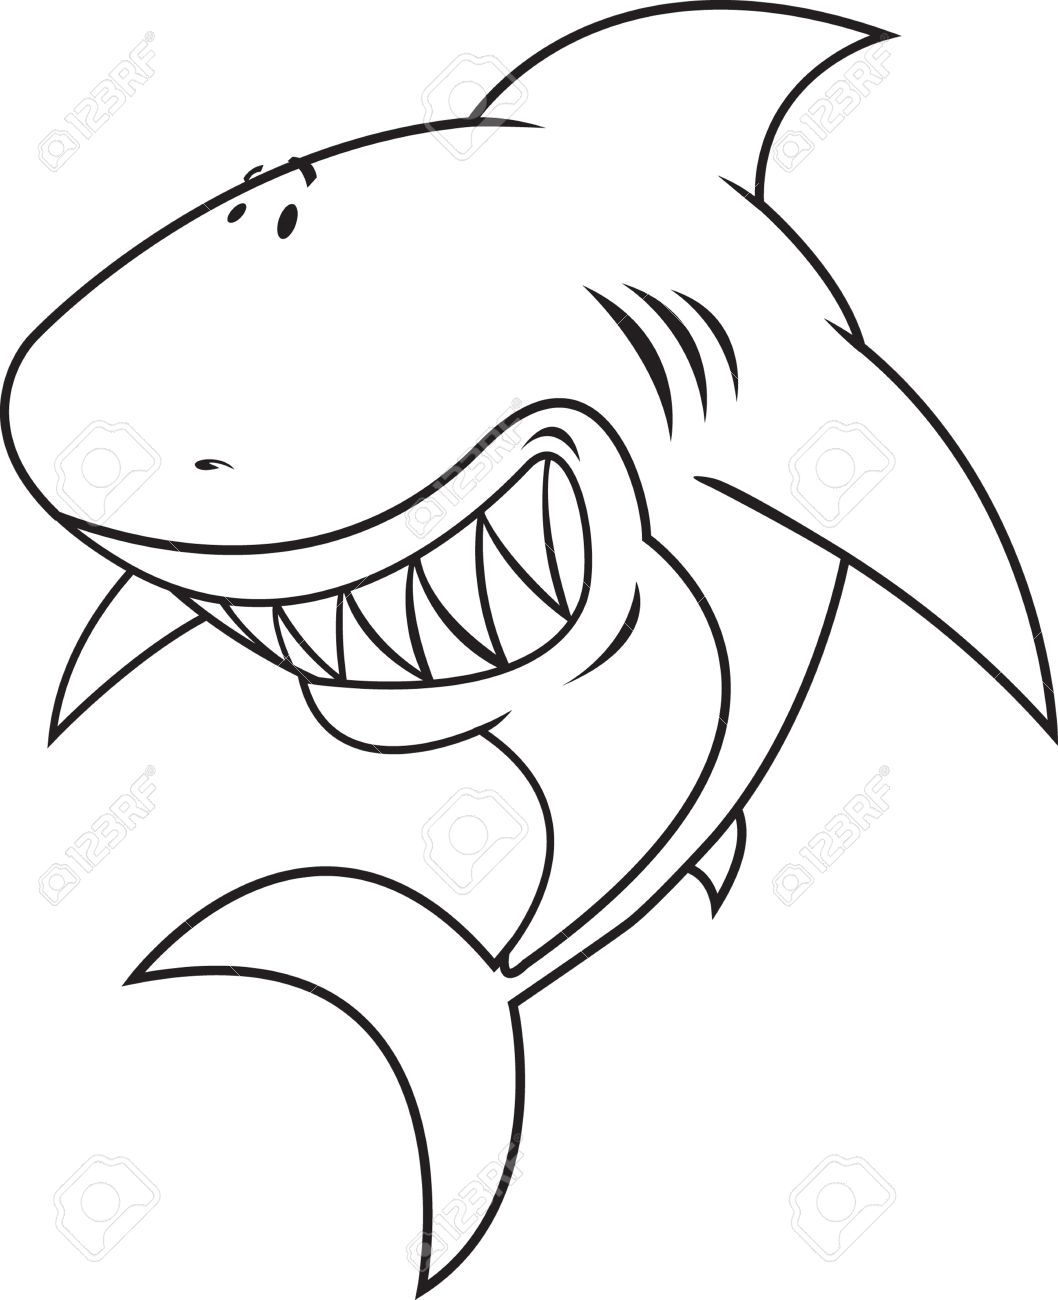 Great White Shark Coloring Book Illustration Stock Vector